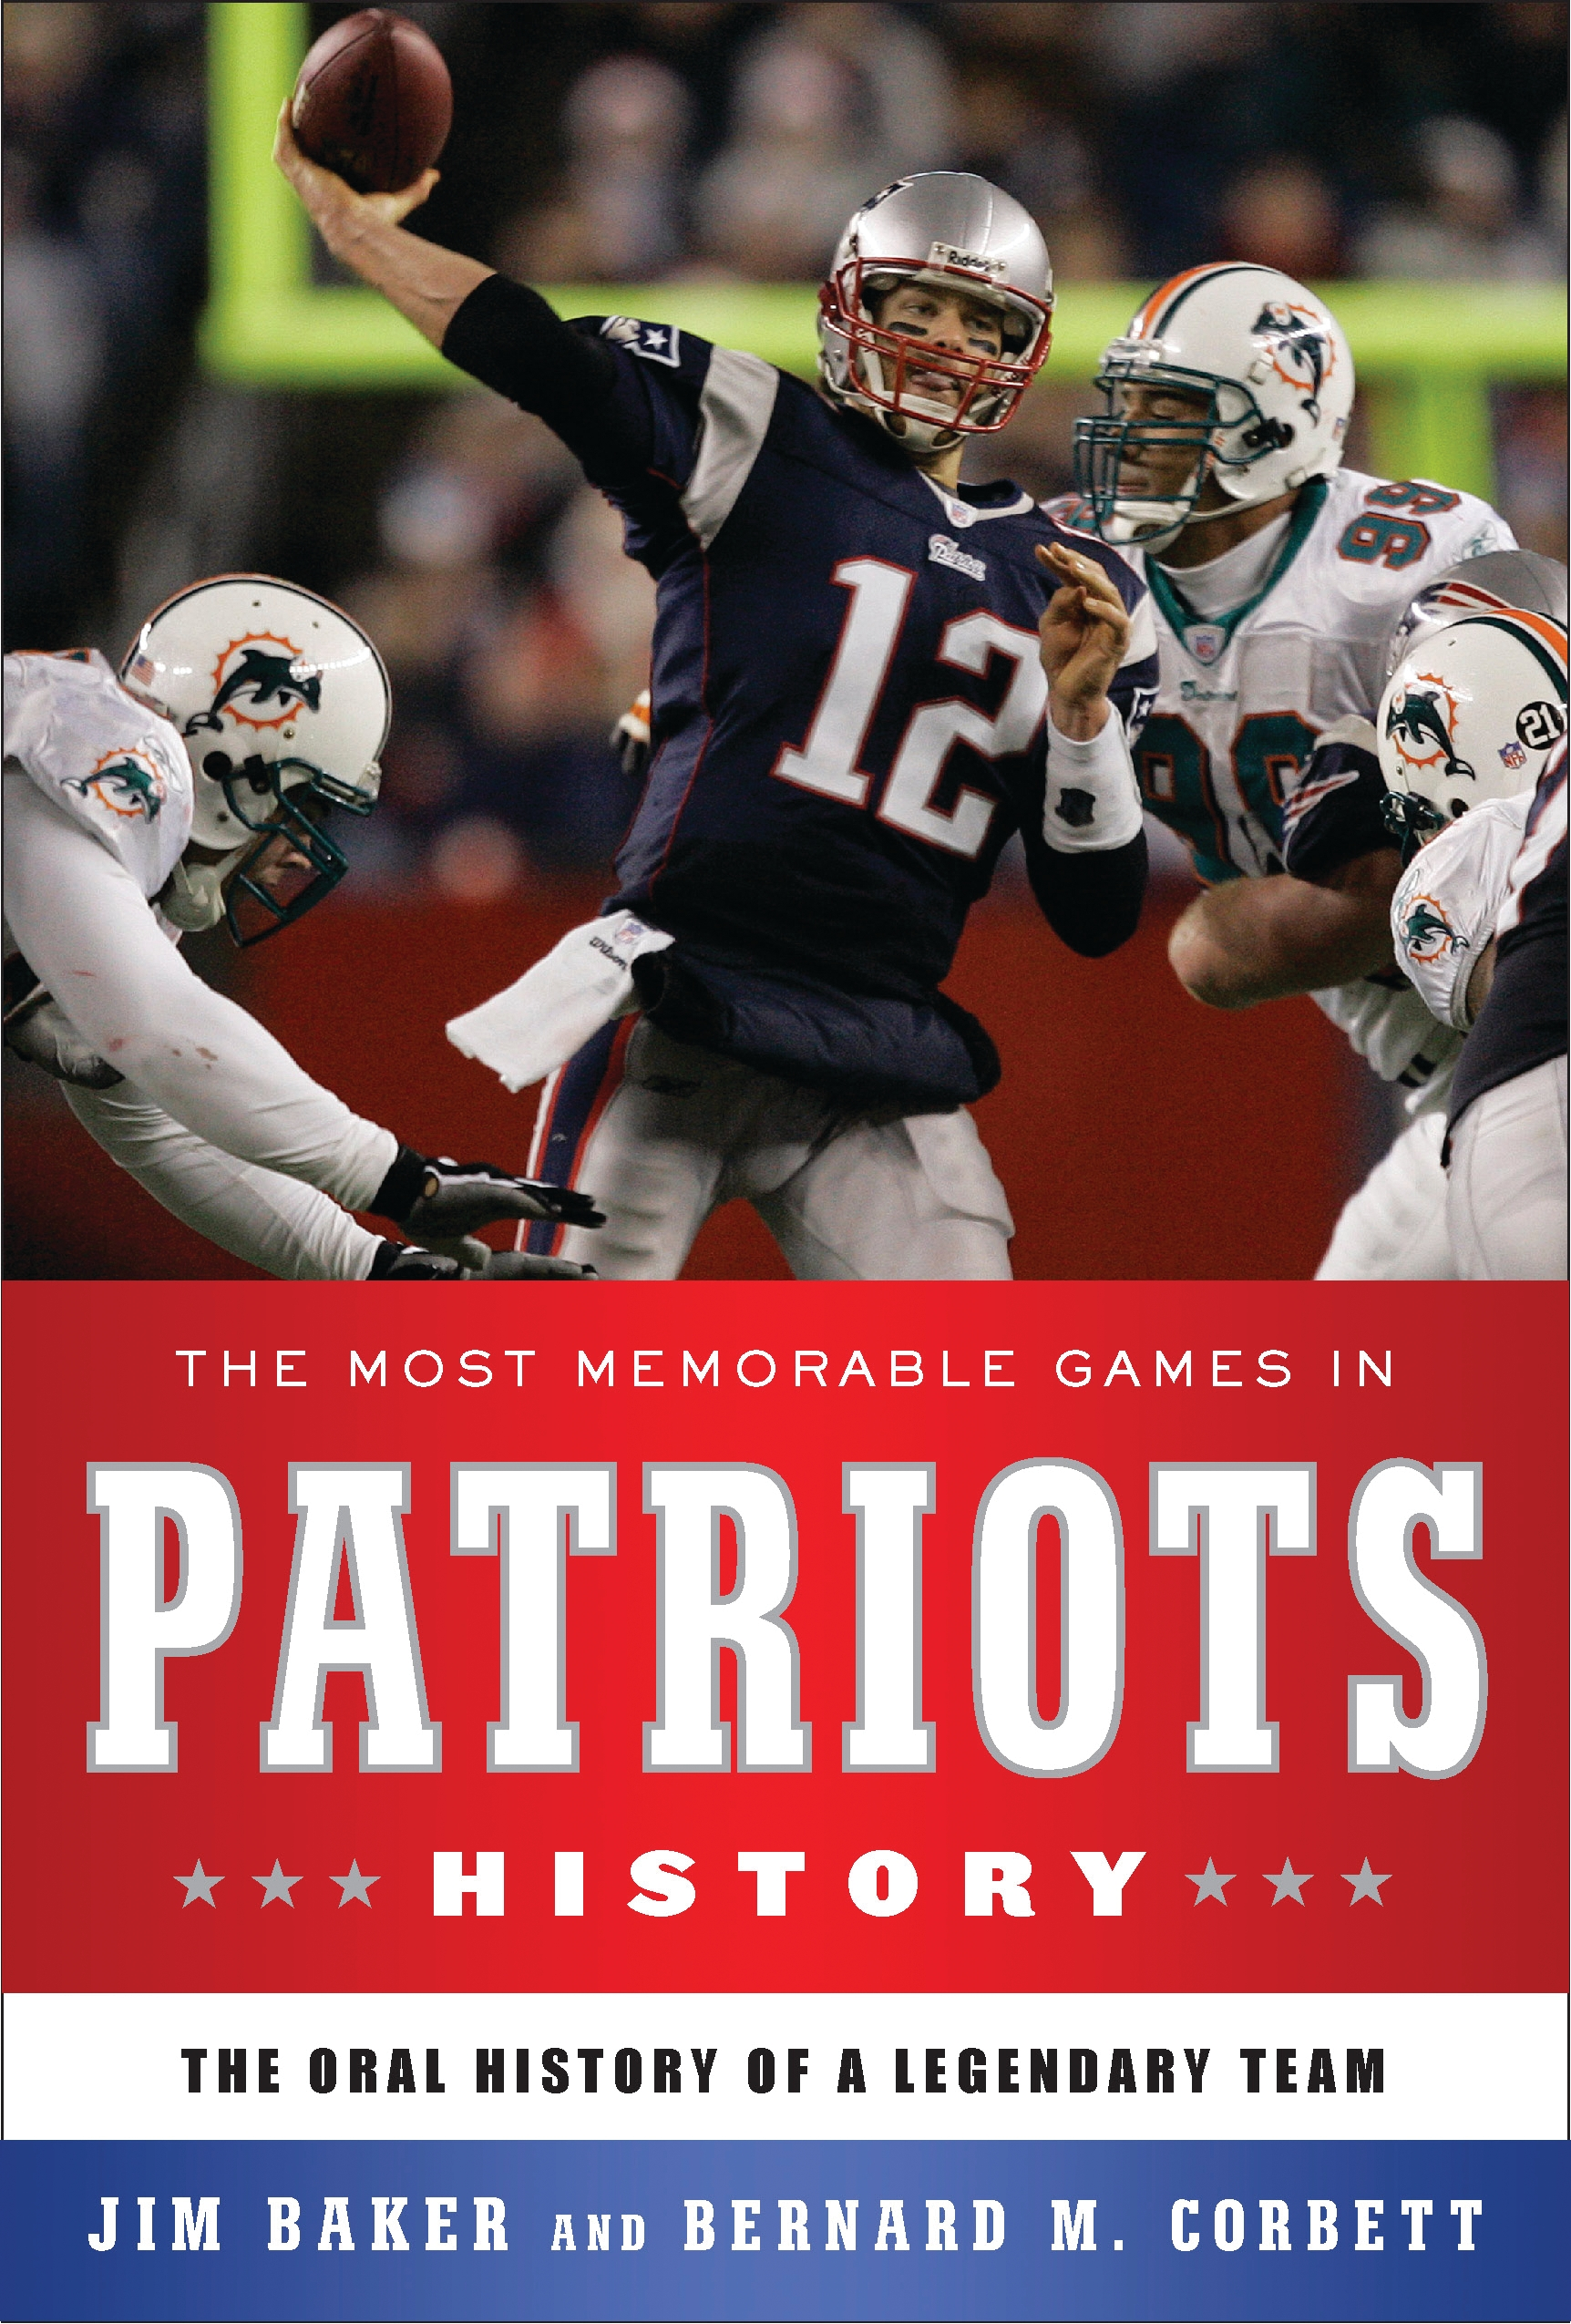 The Most Memorable Games in Patriots History The Oral History of a Legendary Team